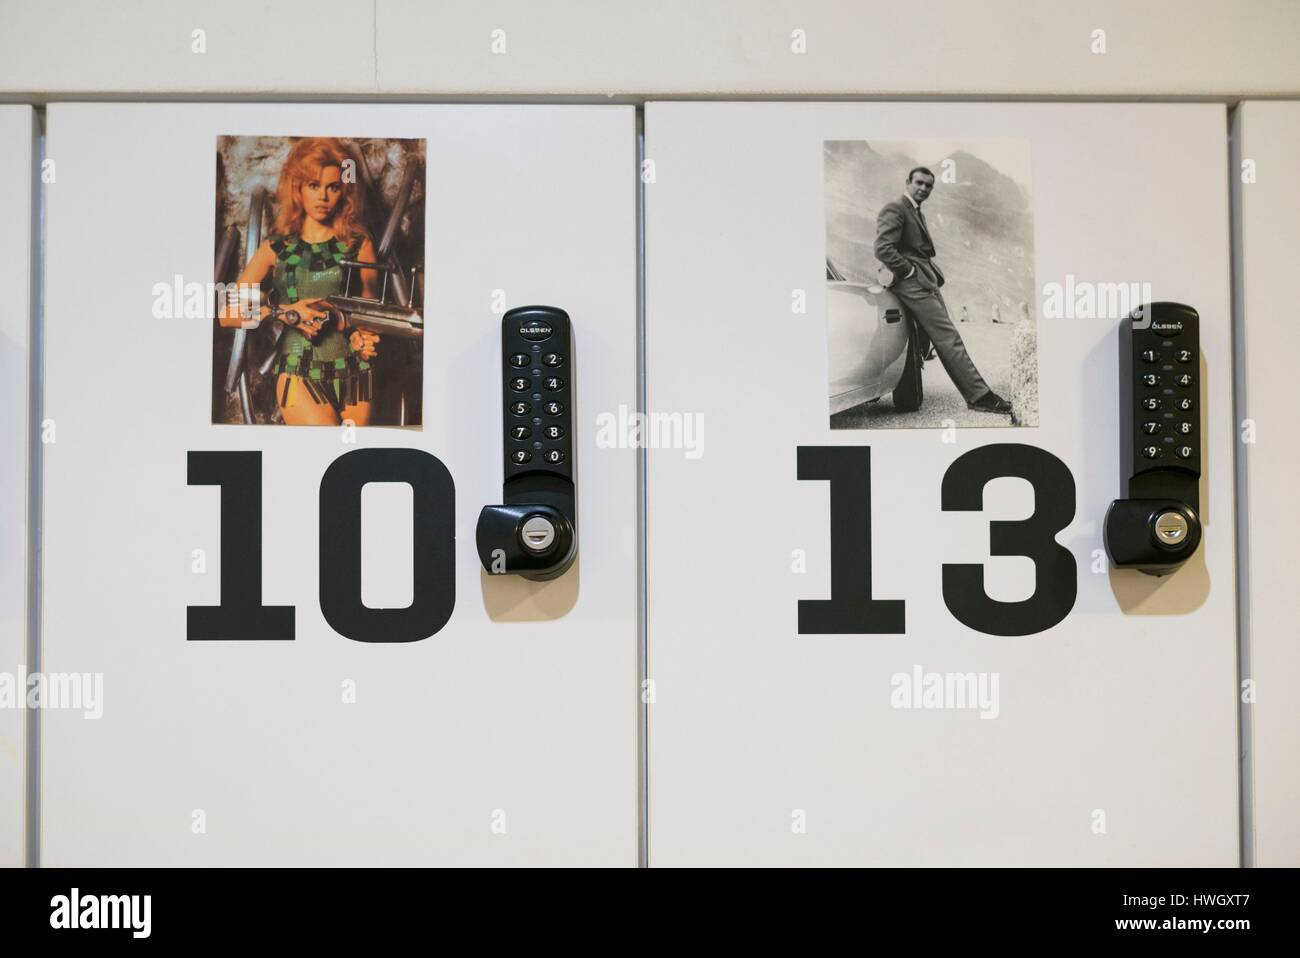 Netherlands, Amsterdam, Eastern Docklands, Eye Film Institute, cinema-themed lockers, Jane Fonda and Sean Connery - Stock Image